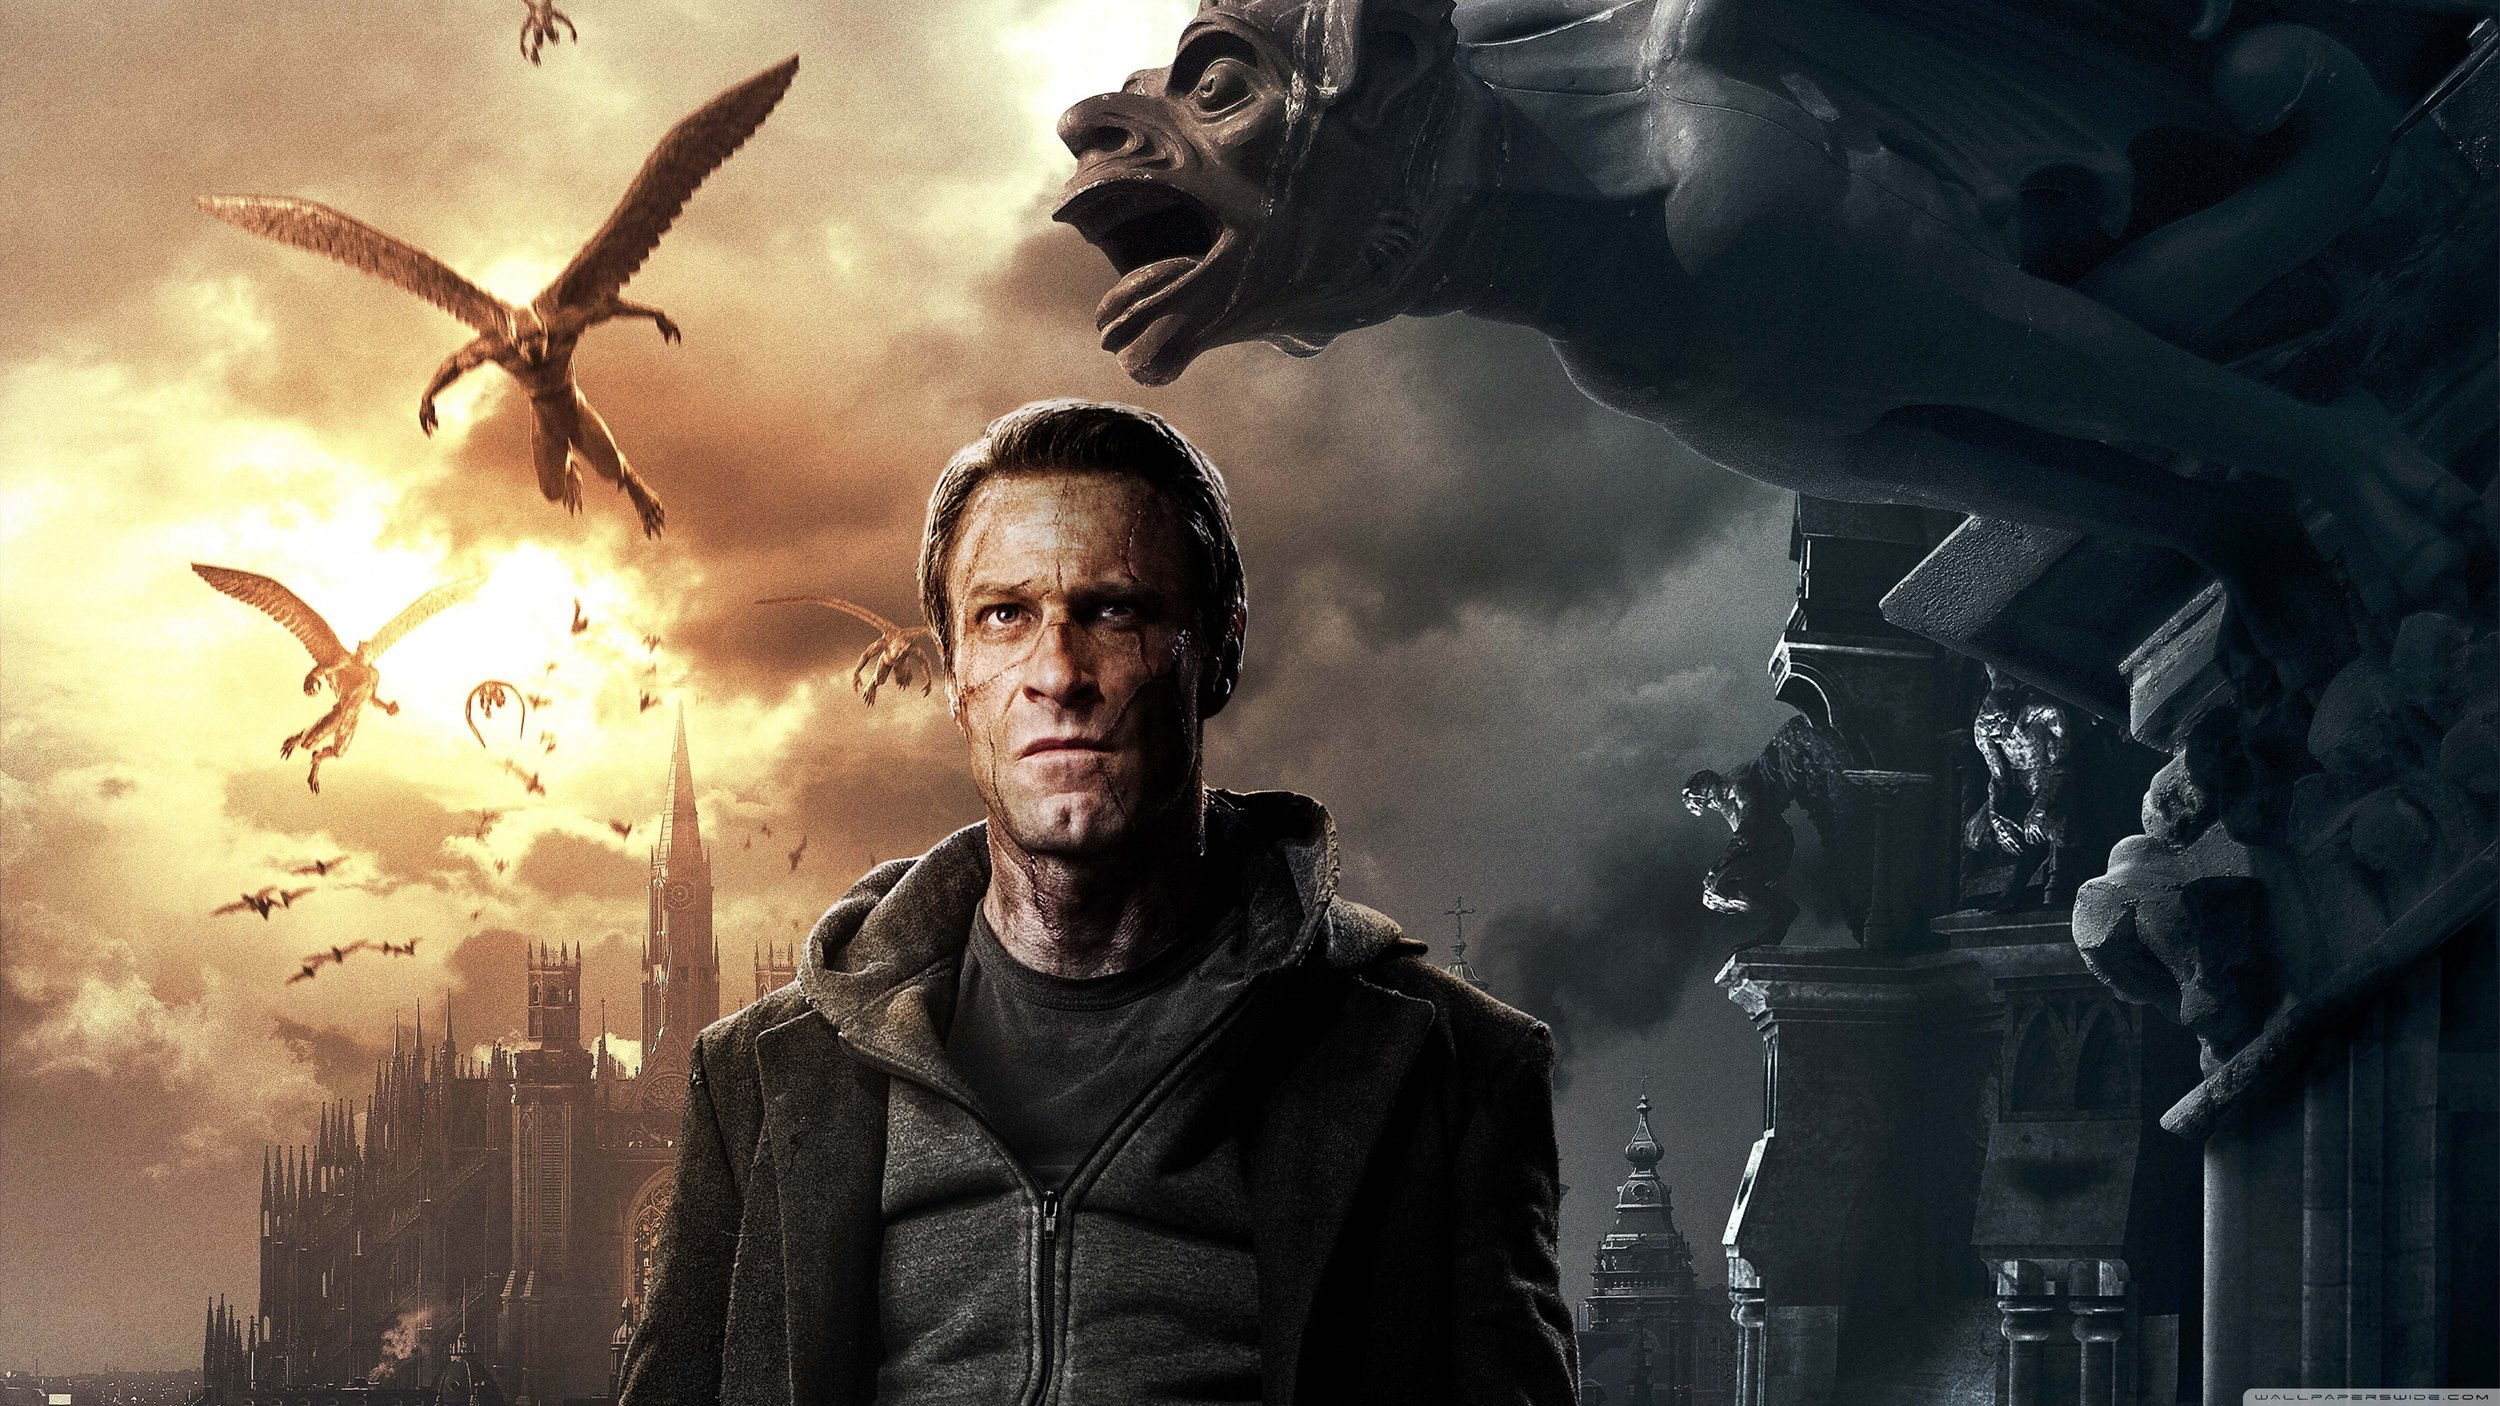 i_frankenstein_wallpaper-3840x2160.jpg